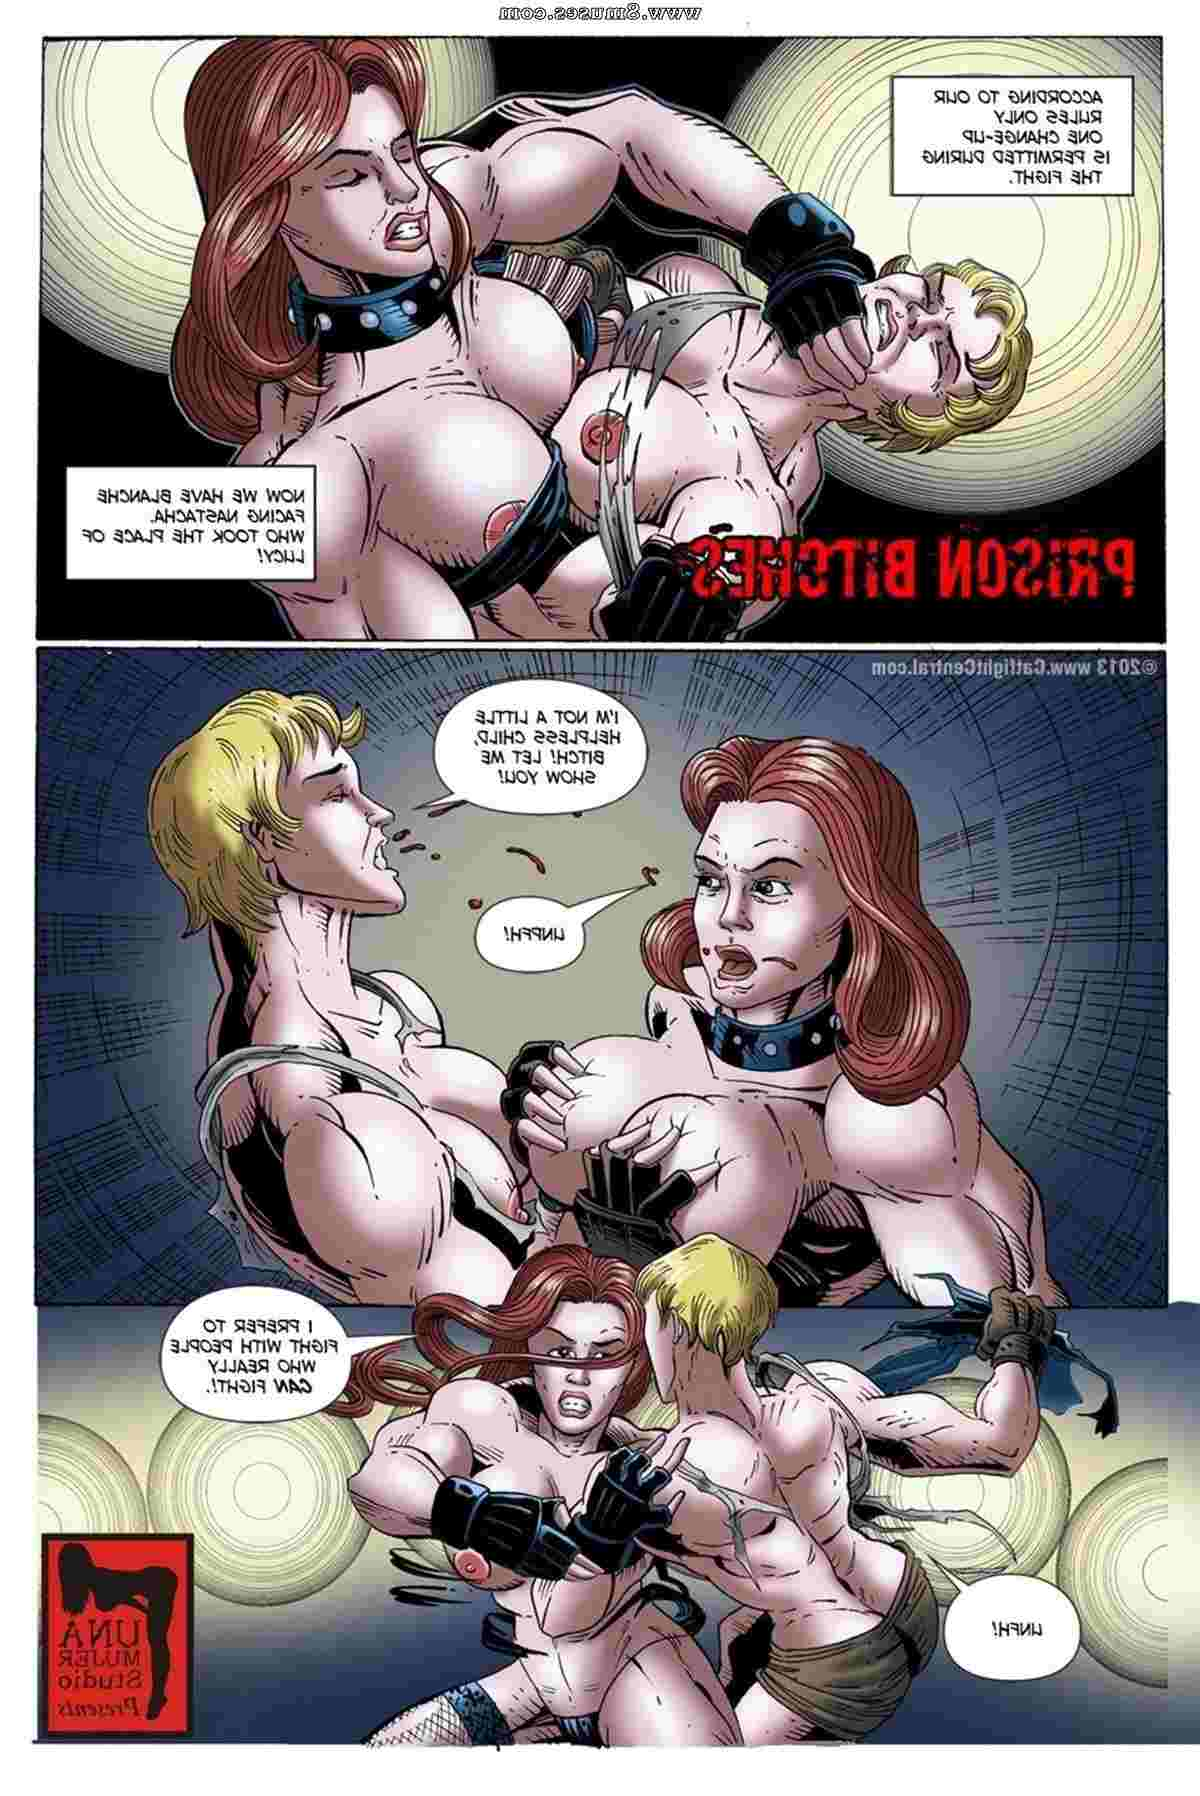 Central-Comics/Catfight-Central/Prison-Bitches Prison_Bitches__8muses_-_Sex_and_Porn_Comics_26.jpg